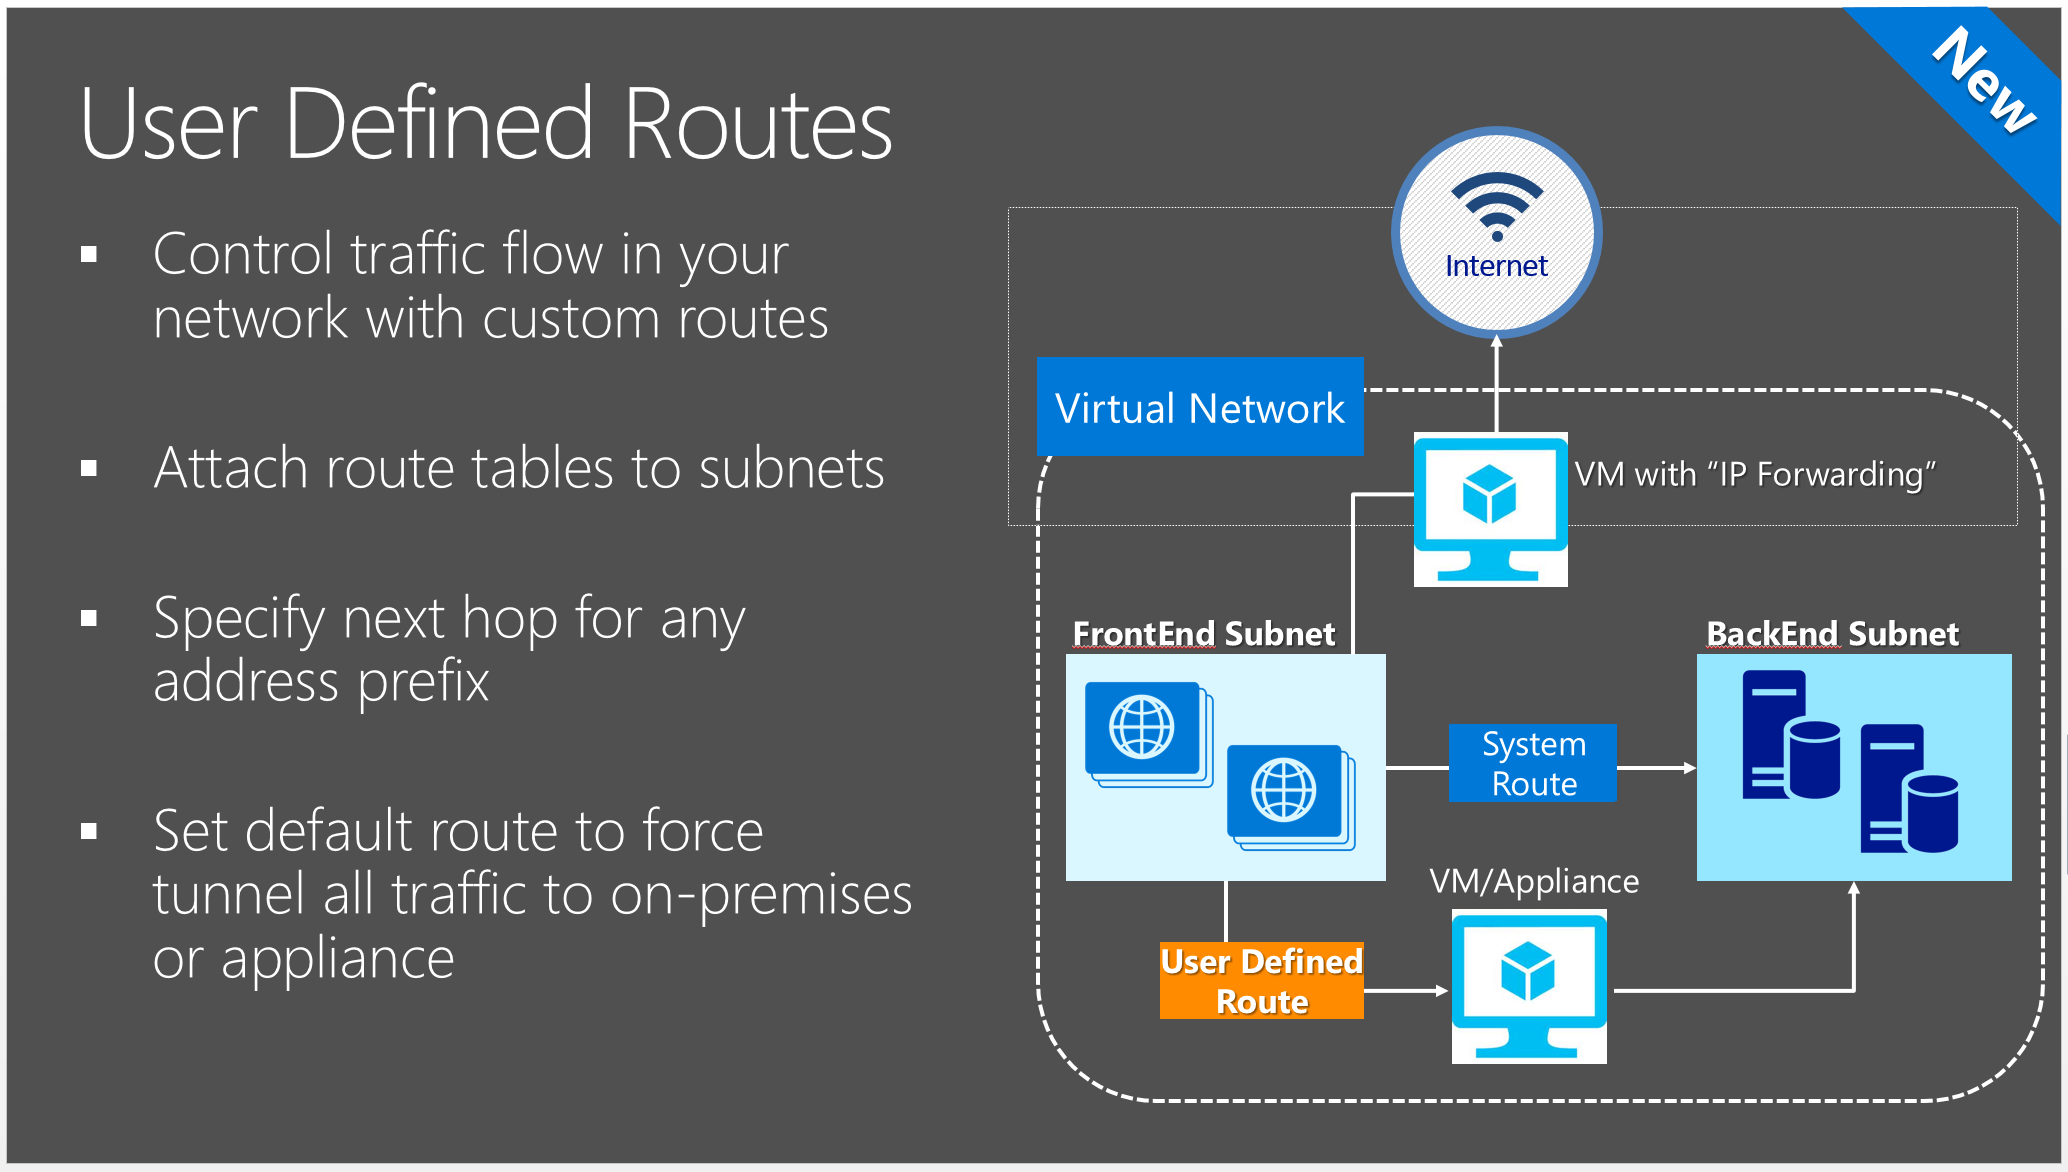 User Defined Routes